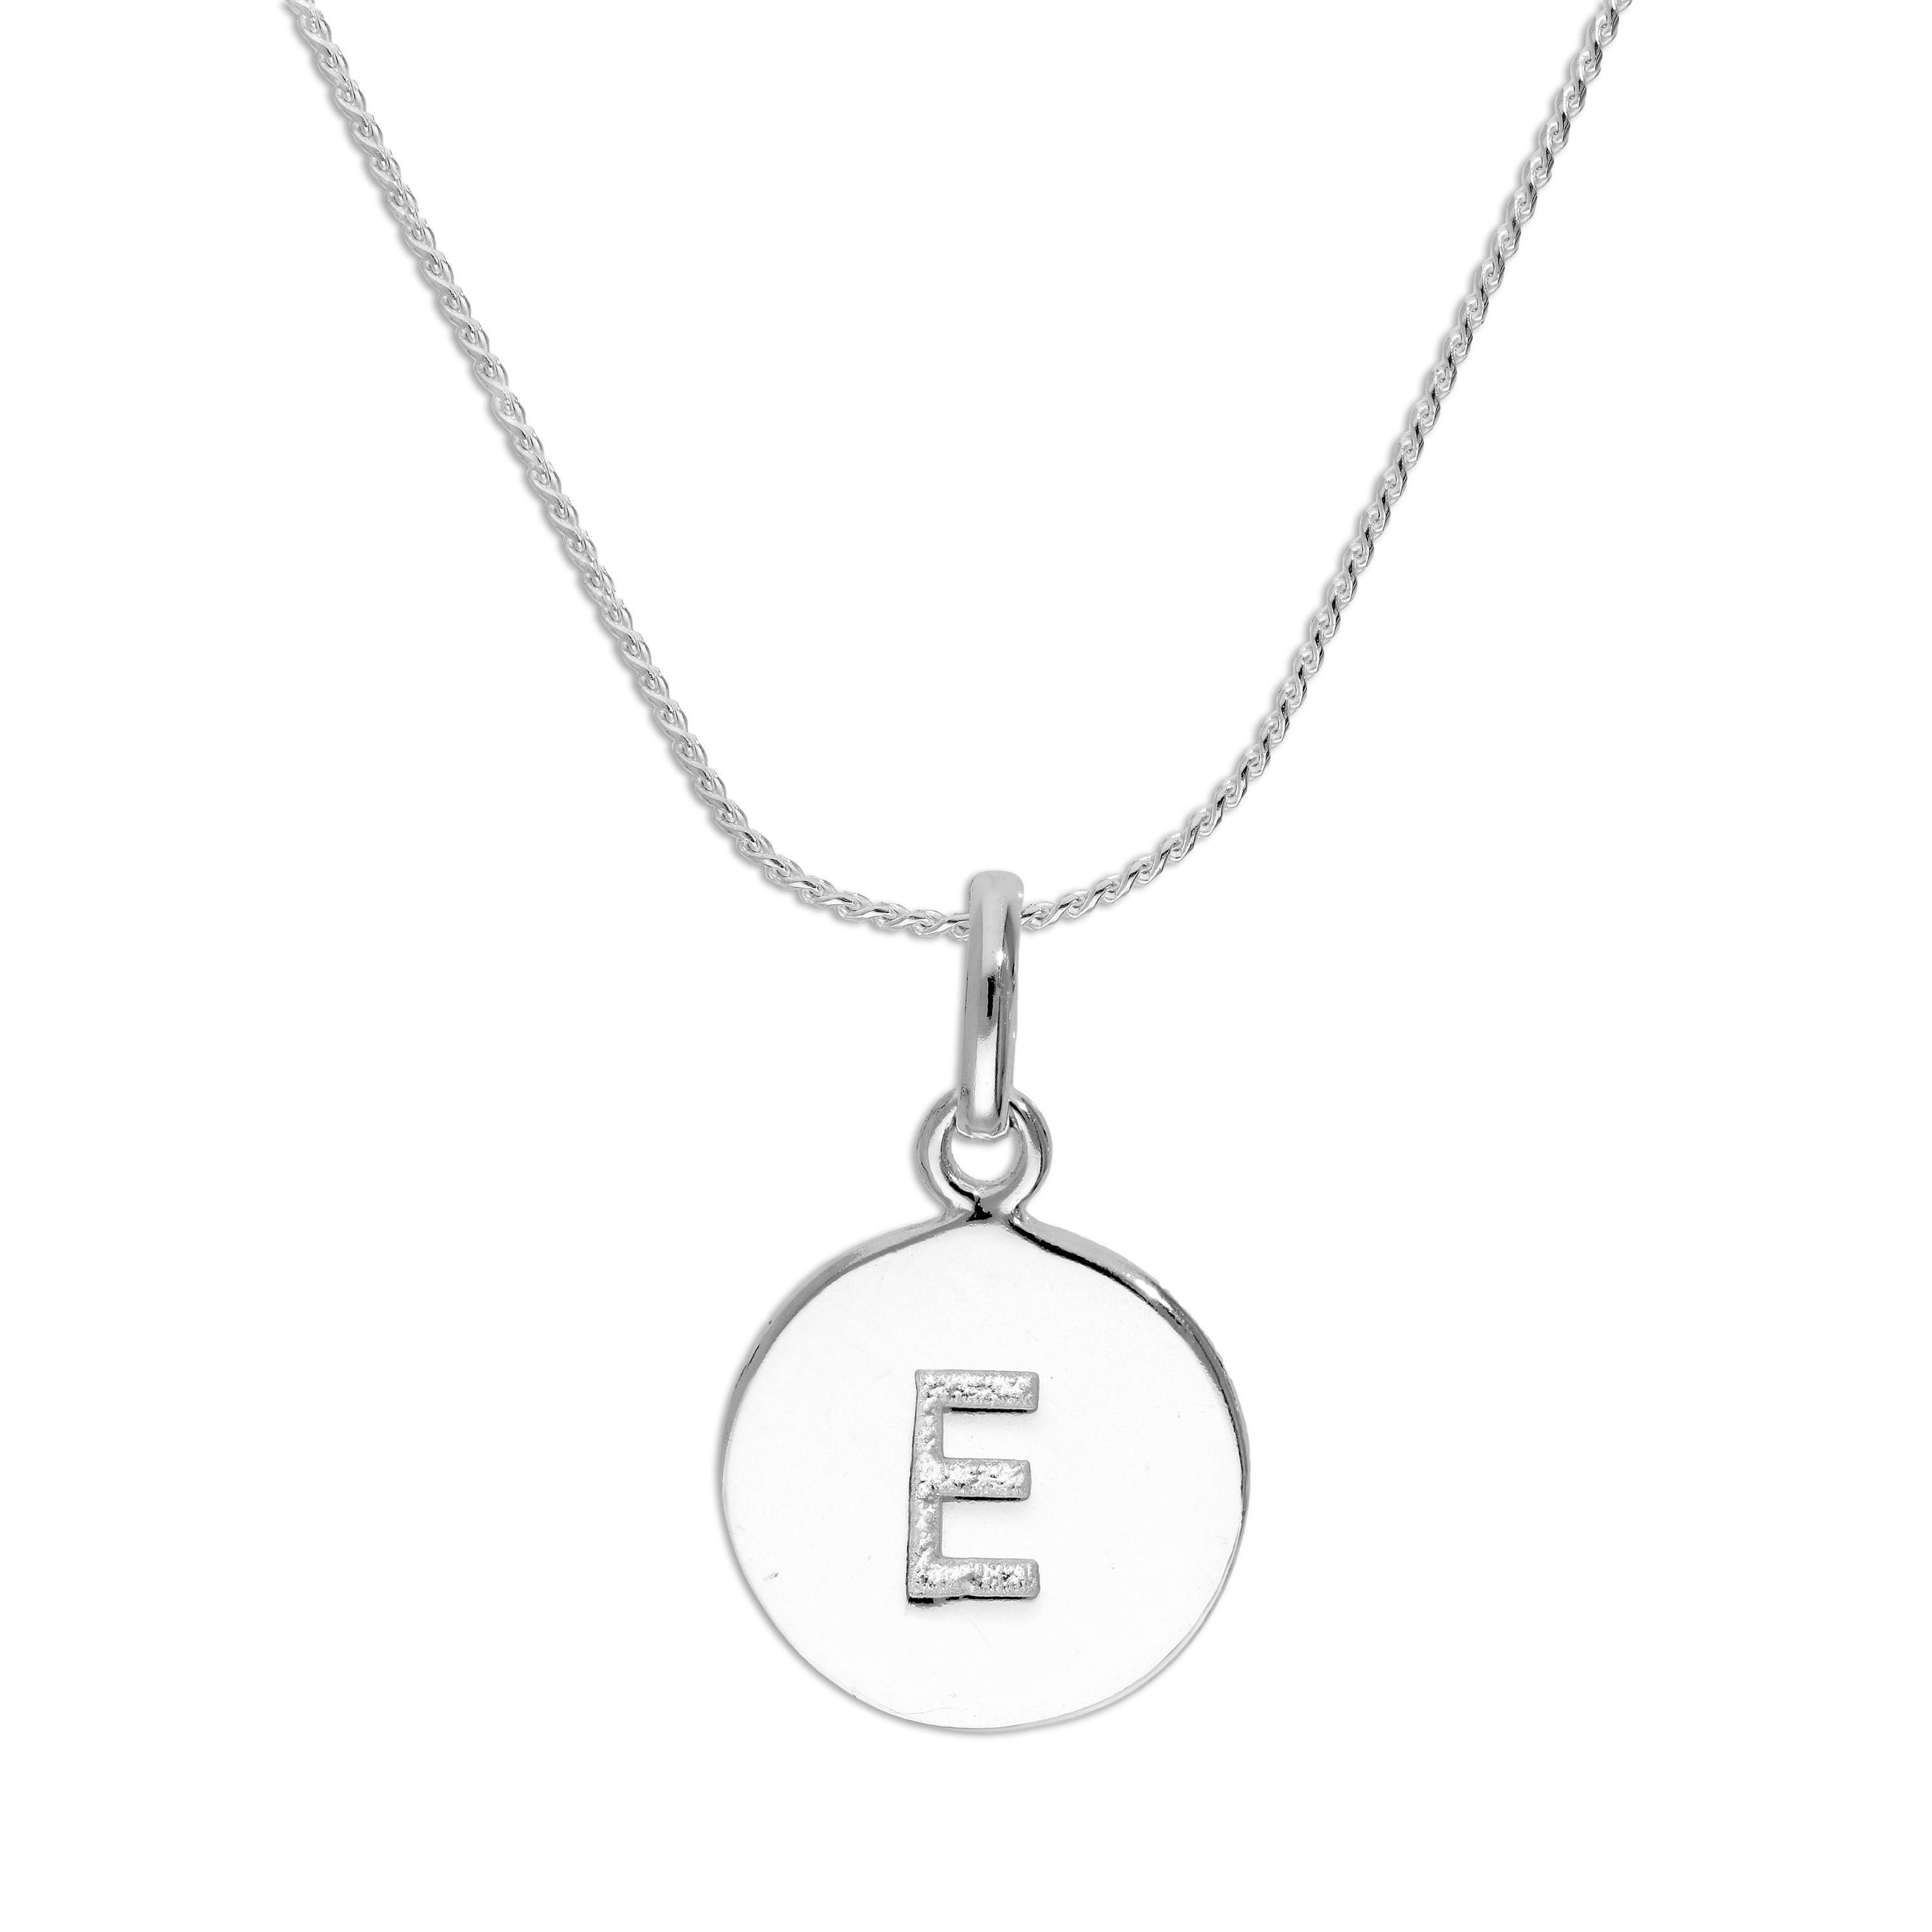 An image of Sterling Silver Initial Letter E Necklace 16 Inches Blue